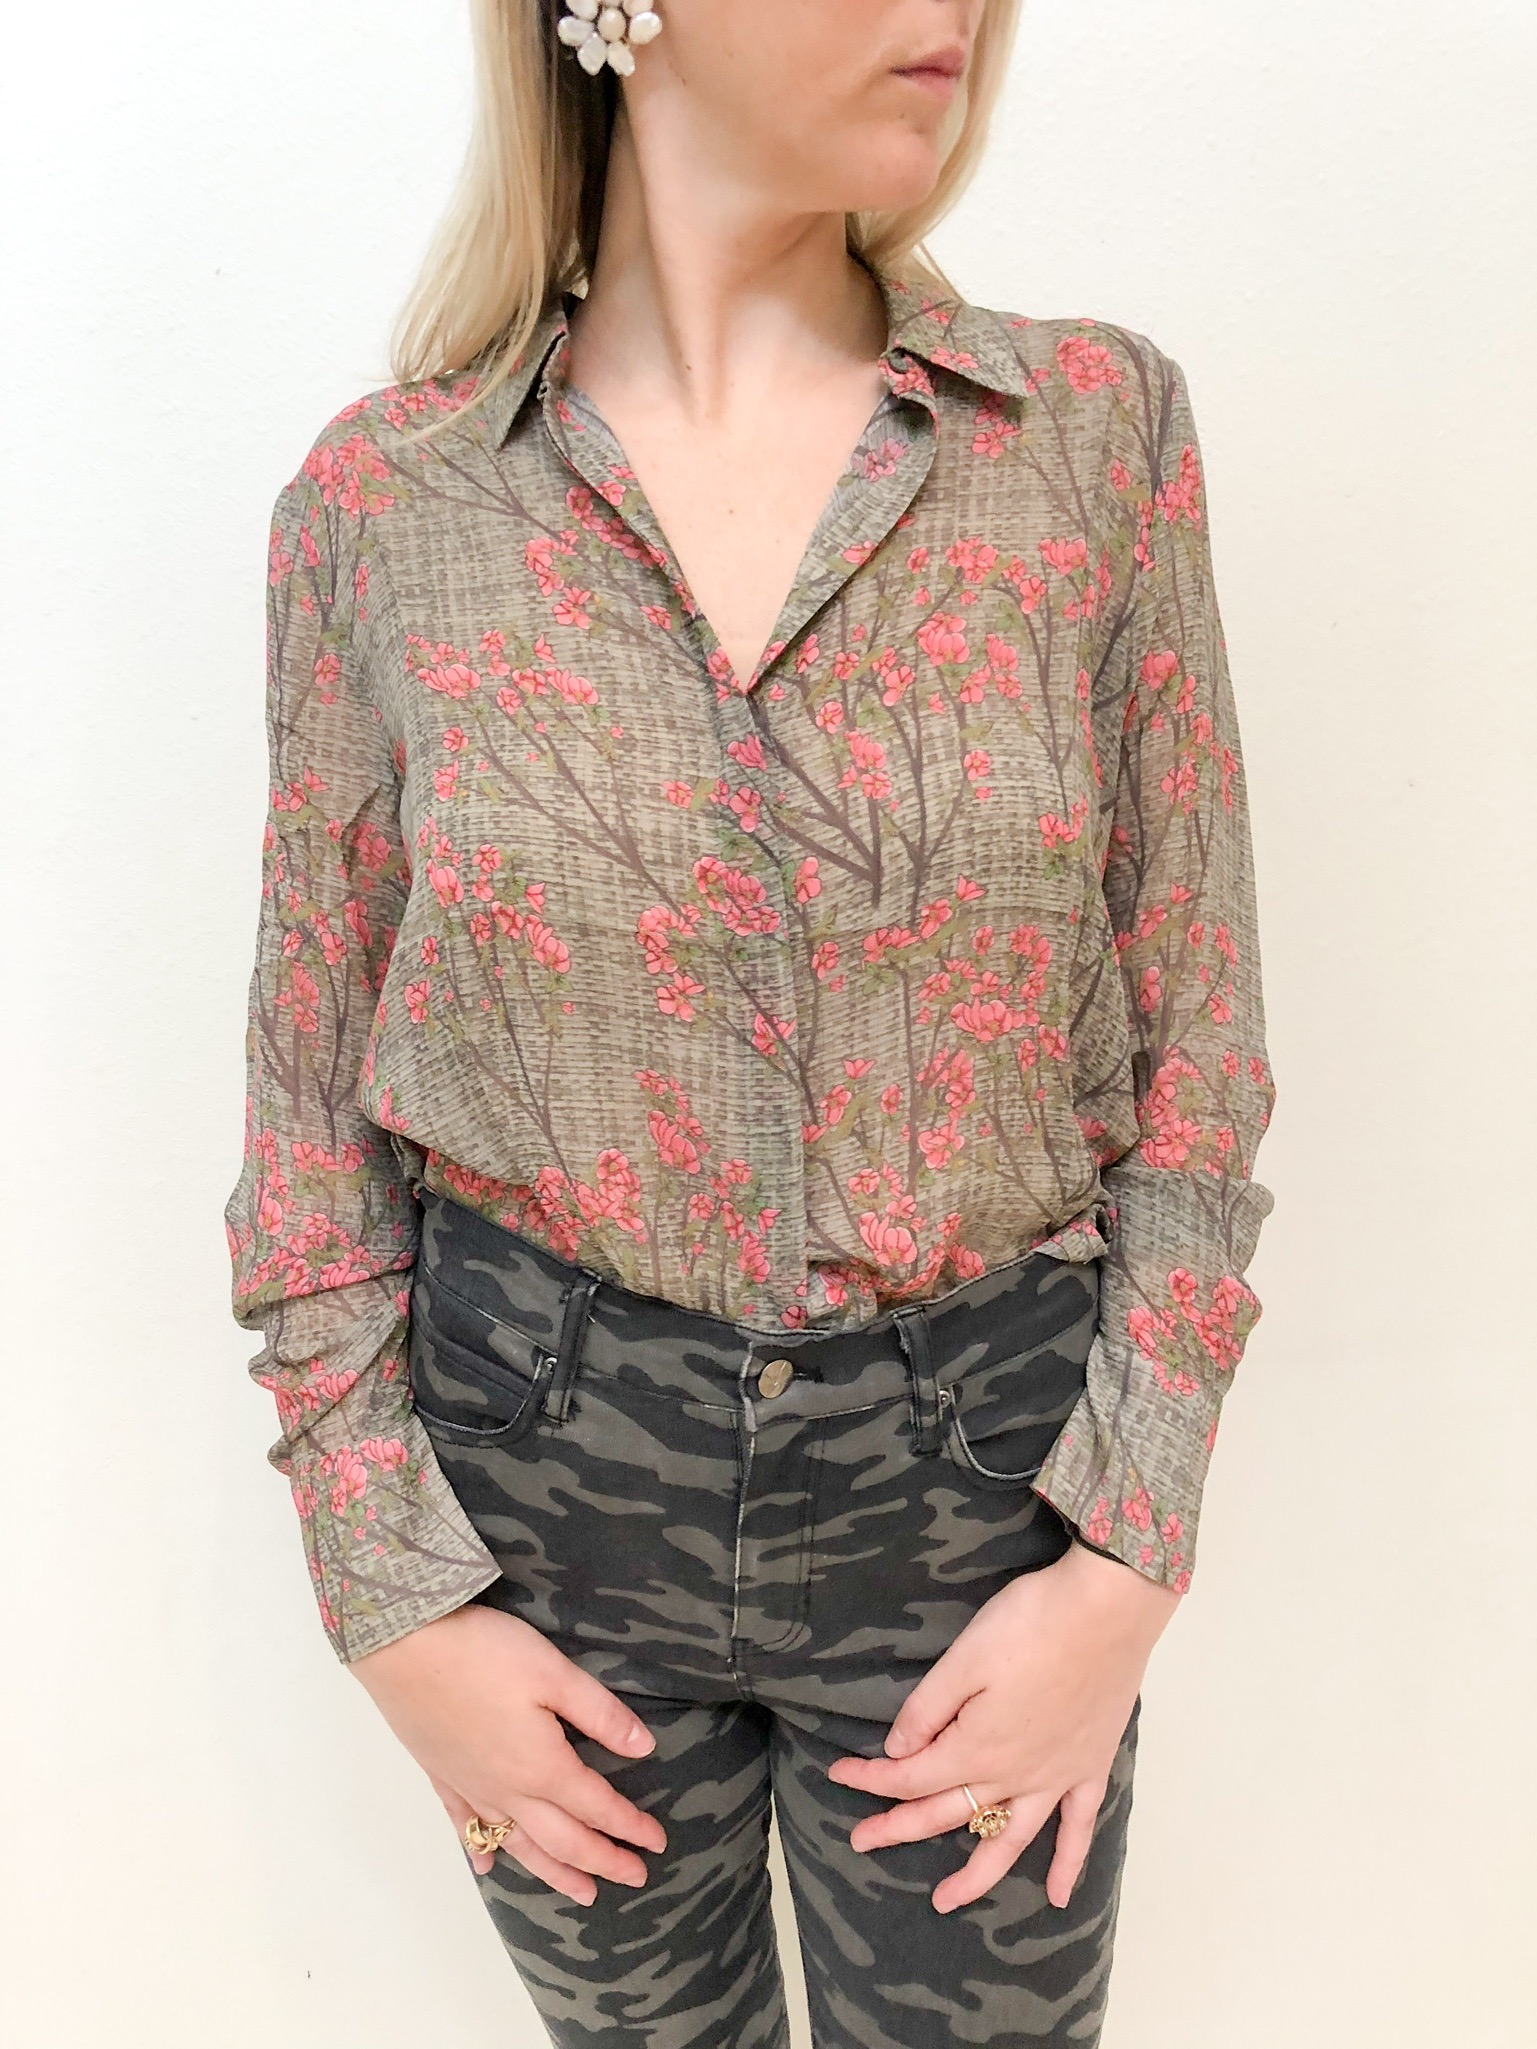 Fifth Look: - Fifth Look: Another top that makes the case for fall florals over spring florals.